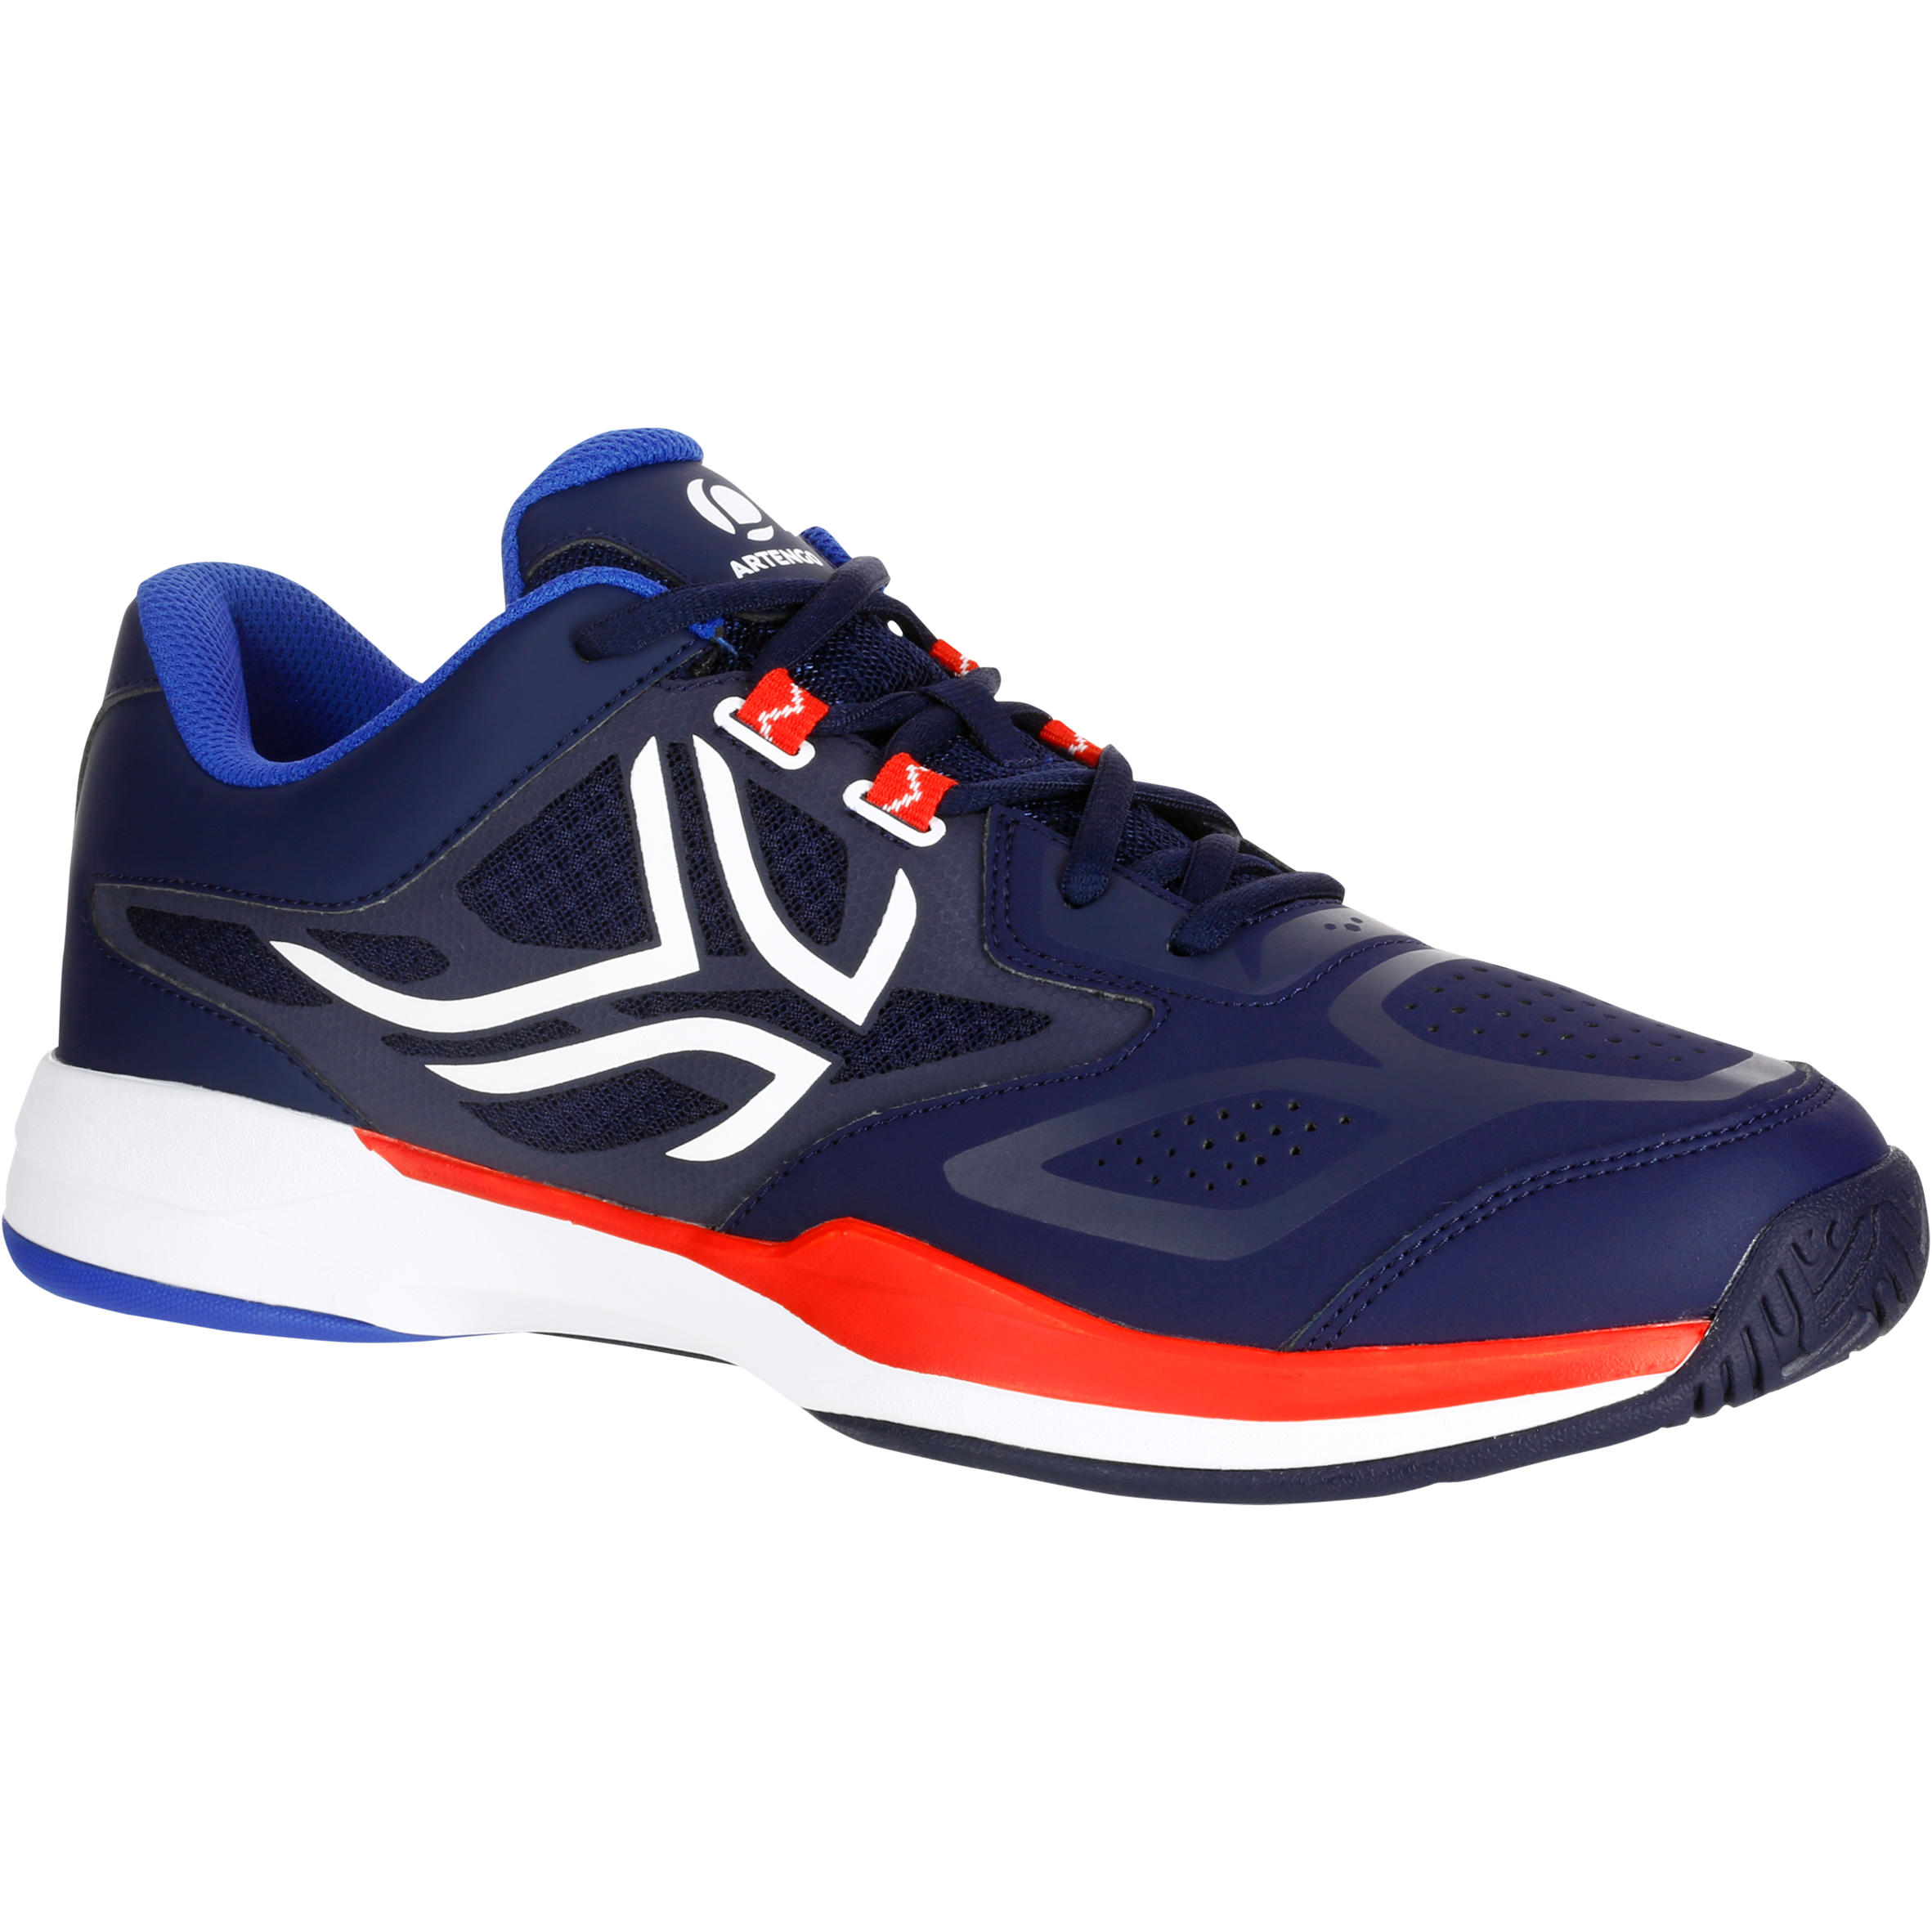 TS560 Tennis Shoes - Blue/Red